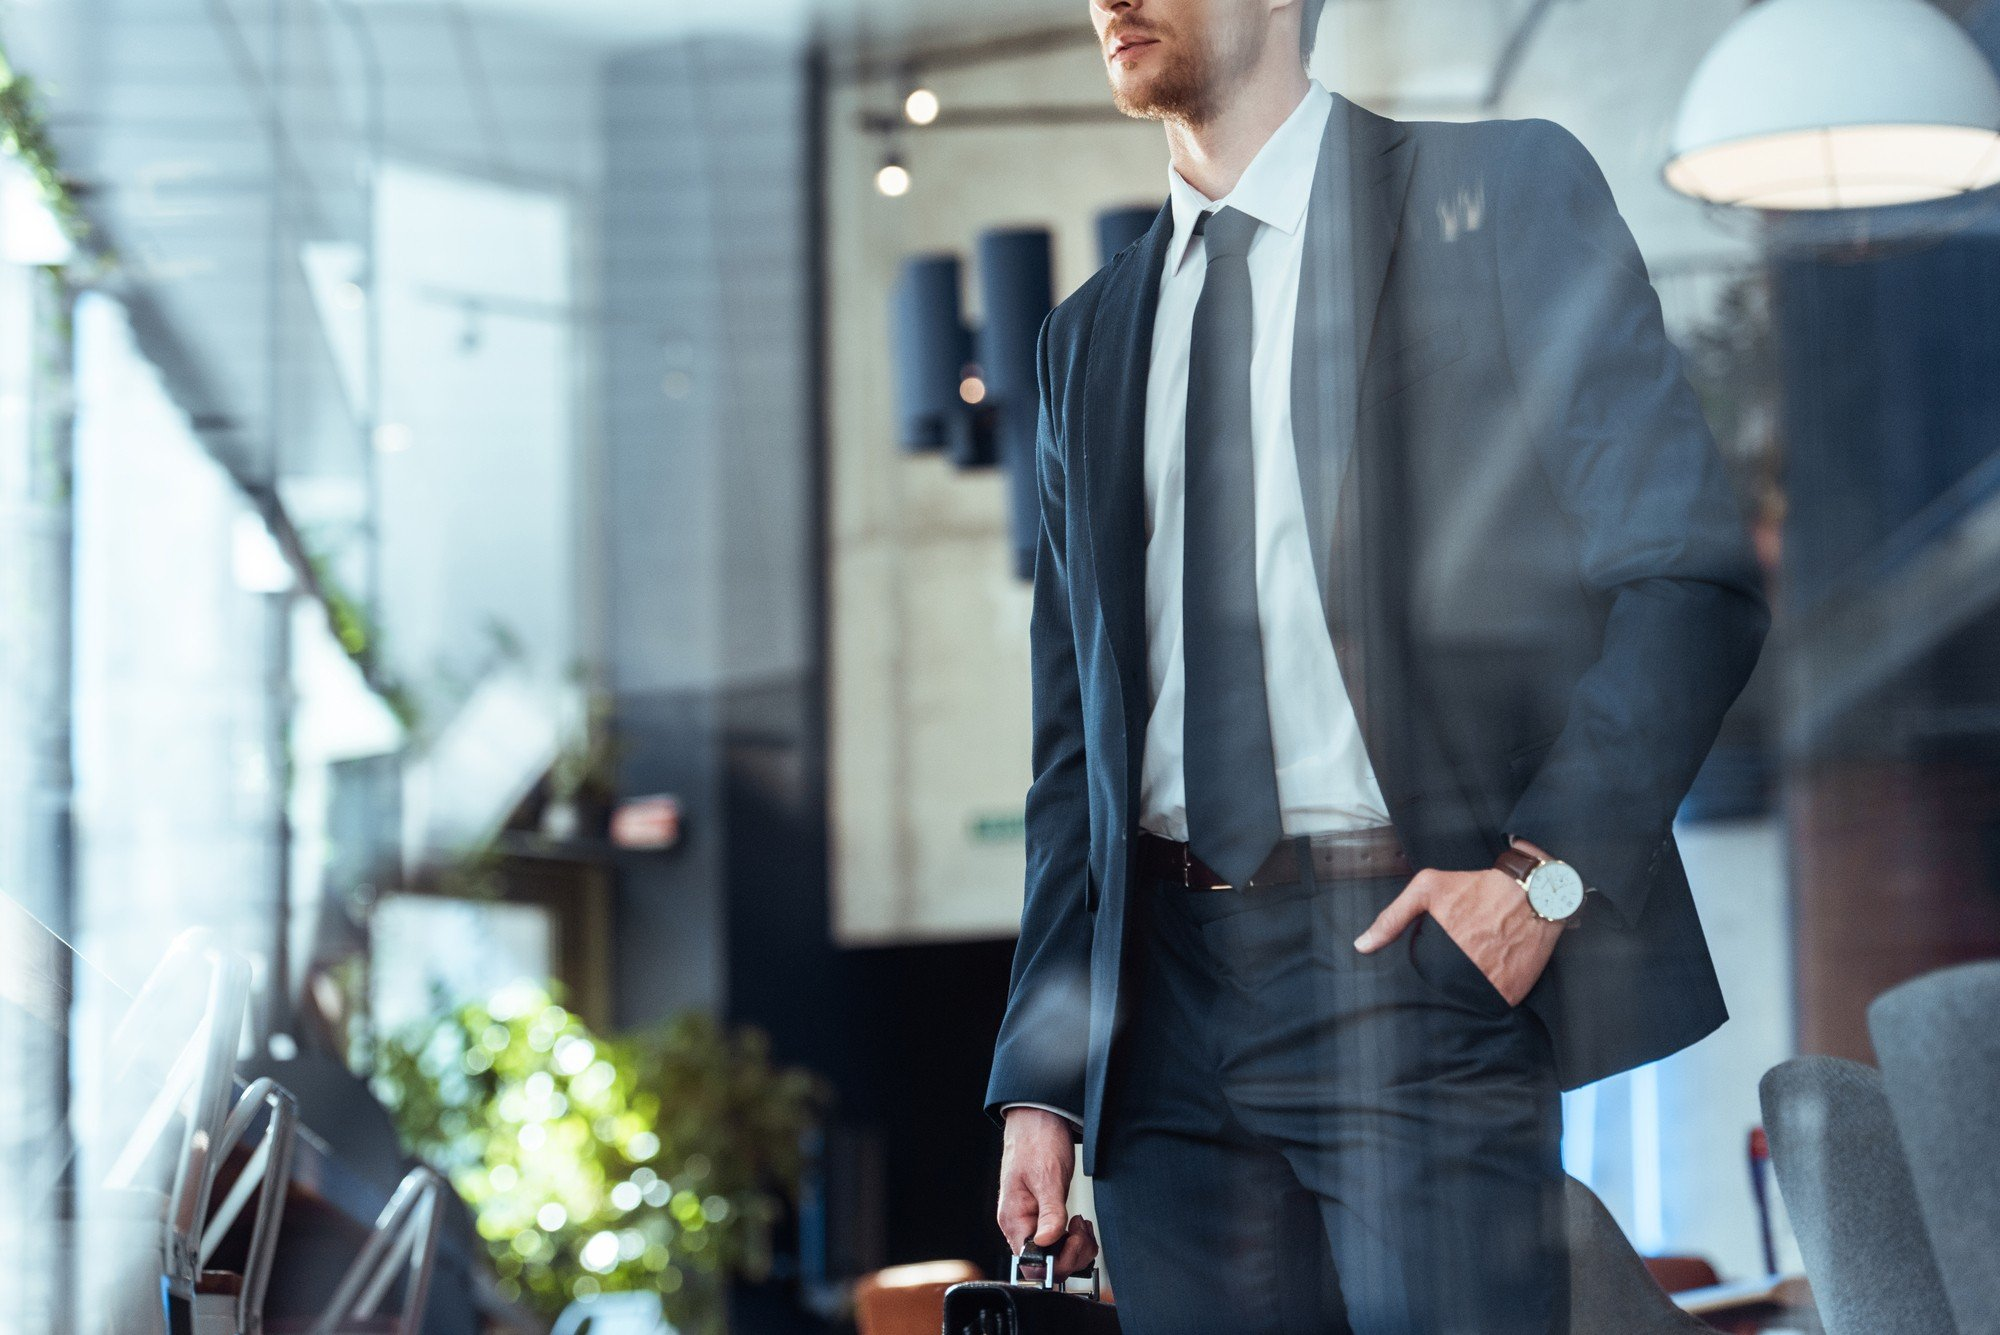 Dress to impress on your business trips